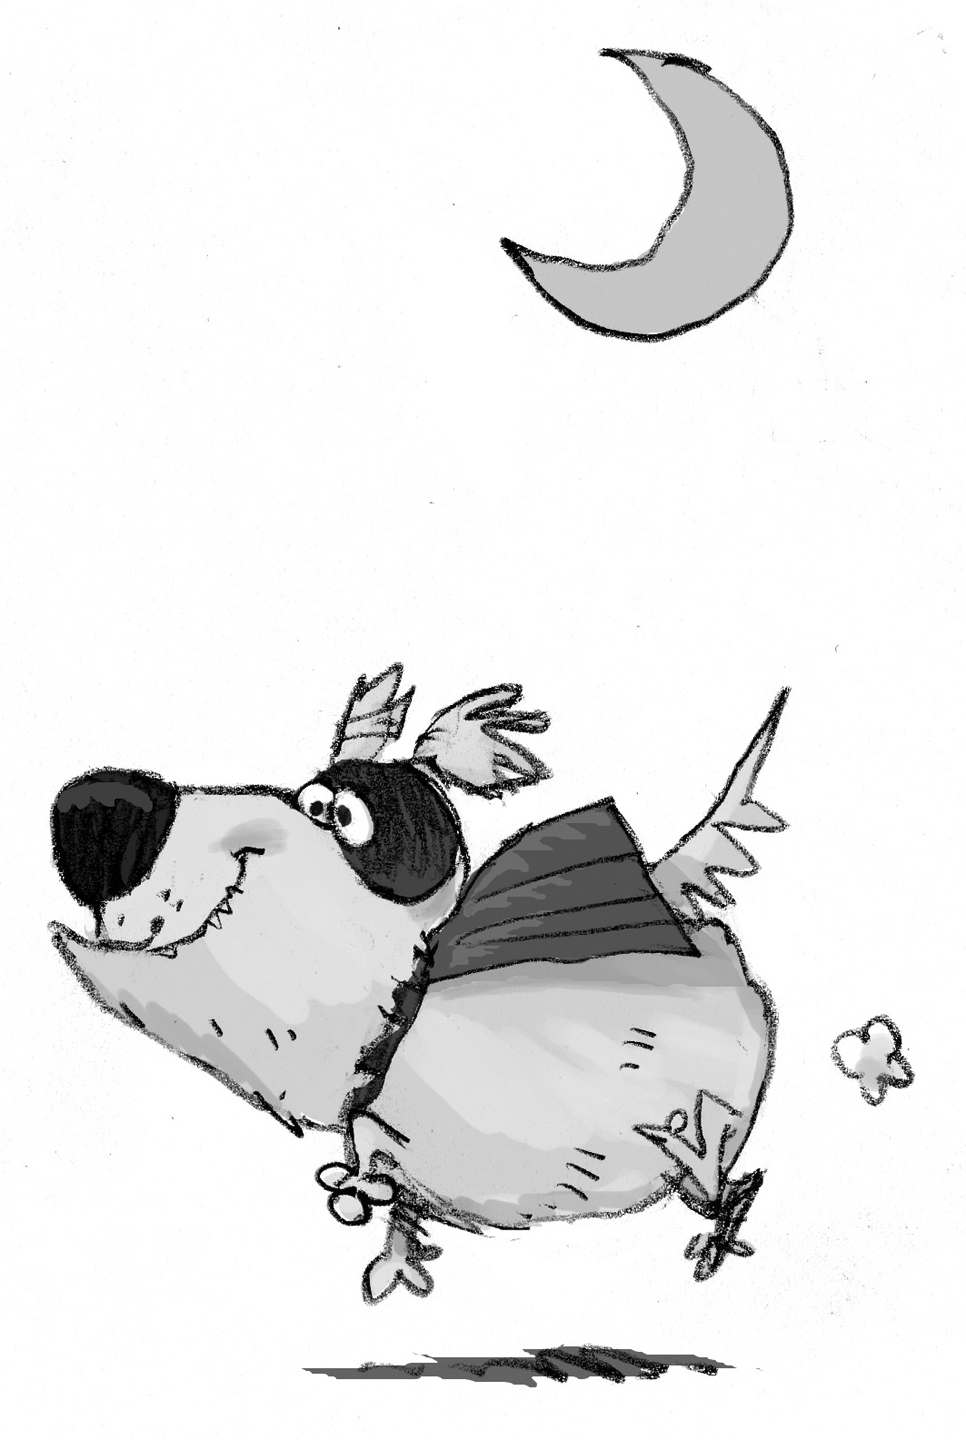 300 dpi Chris Ware illustration of dog in Halloween costume. Lexington Herald-Leader 2012<p>  krtnational national; krt; krtcampus campus; mctillustration; krtdiversity diversity; youth; 10011000; FEA; krtfall fall; krtfeatures features; krthalloween halloween; krtholiday holiday; krtlifestyle lifestyle; LEI; leisure; LIF; public holiday; risk diversity youth; lx contributed ware; 2012; krt2012; animal; pet; dog; trick or treat; trick-or-treater